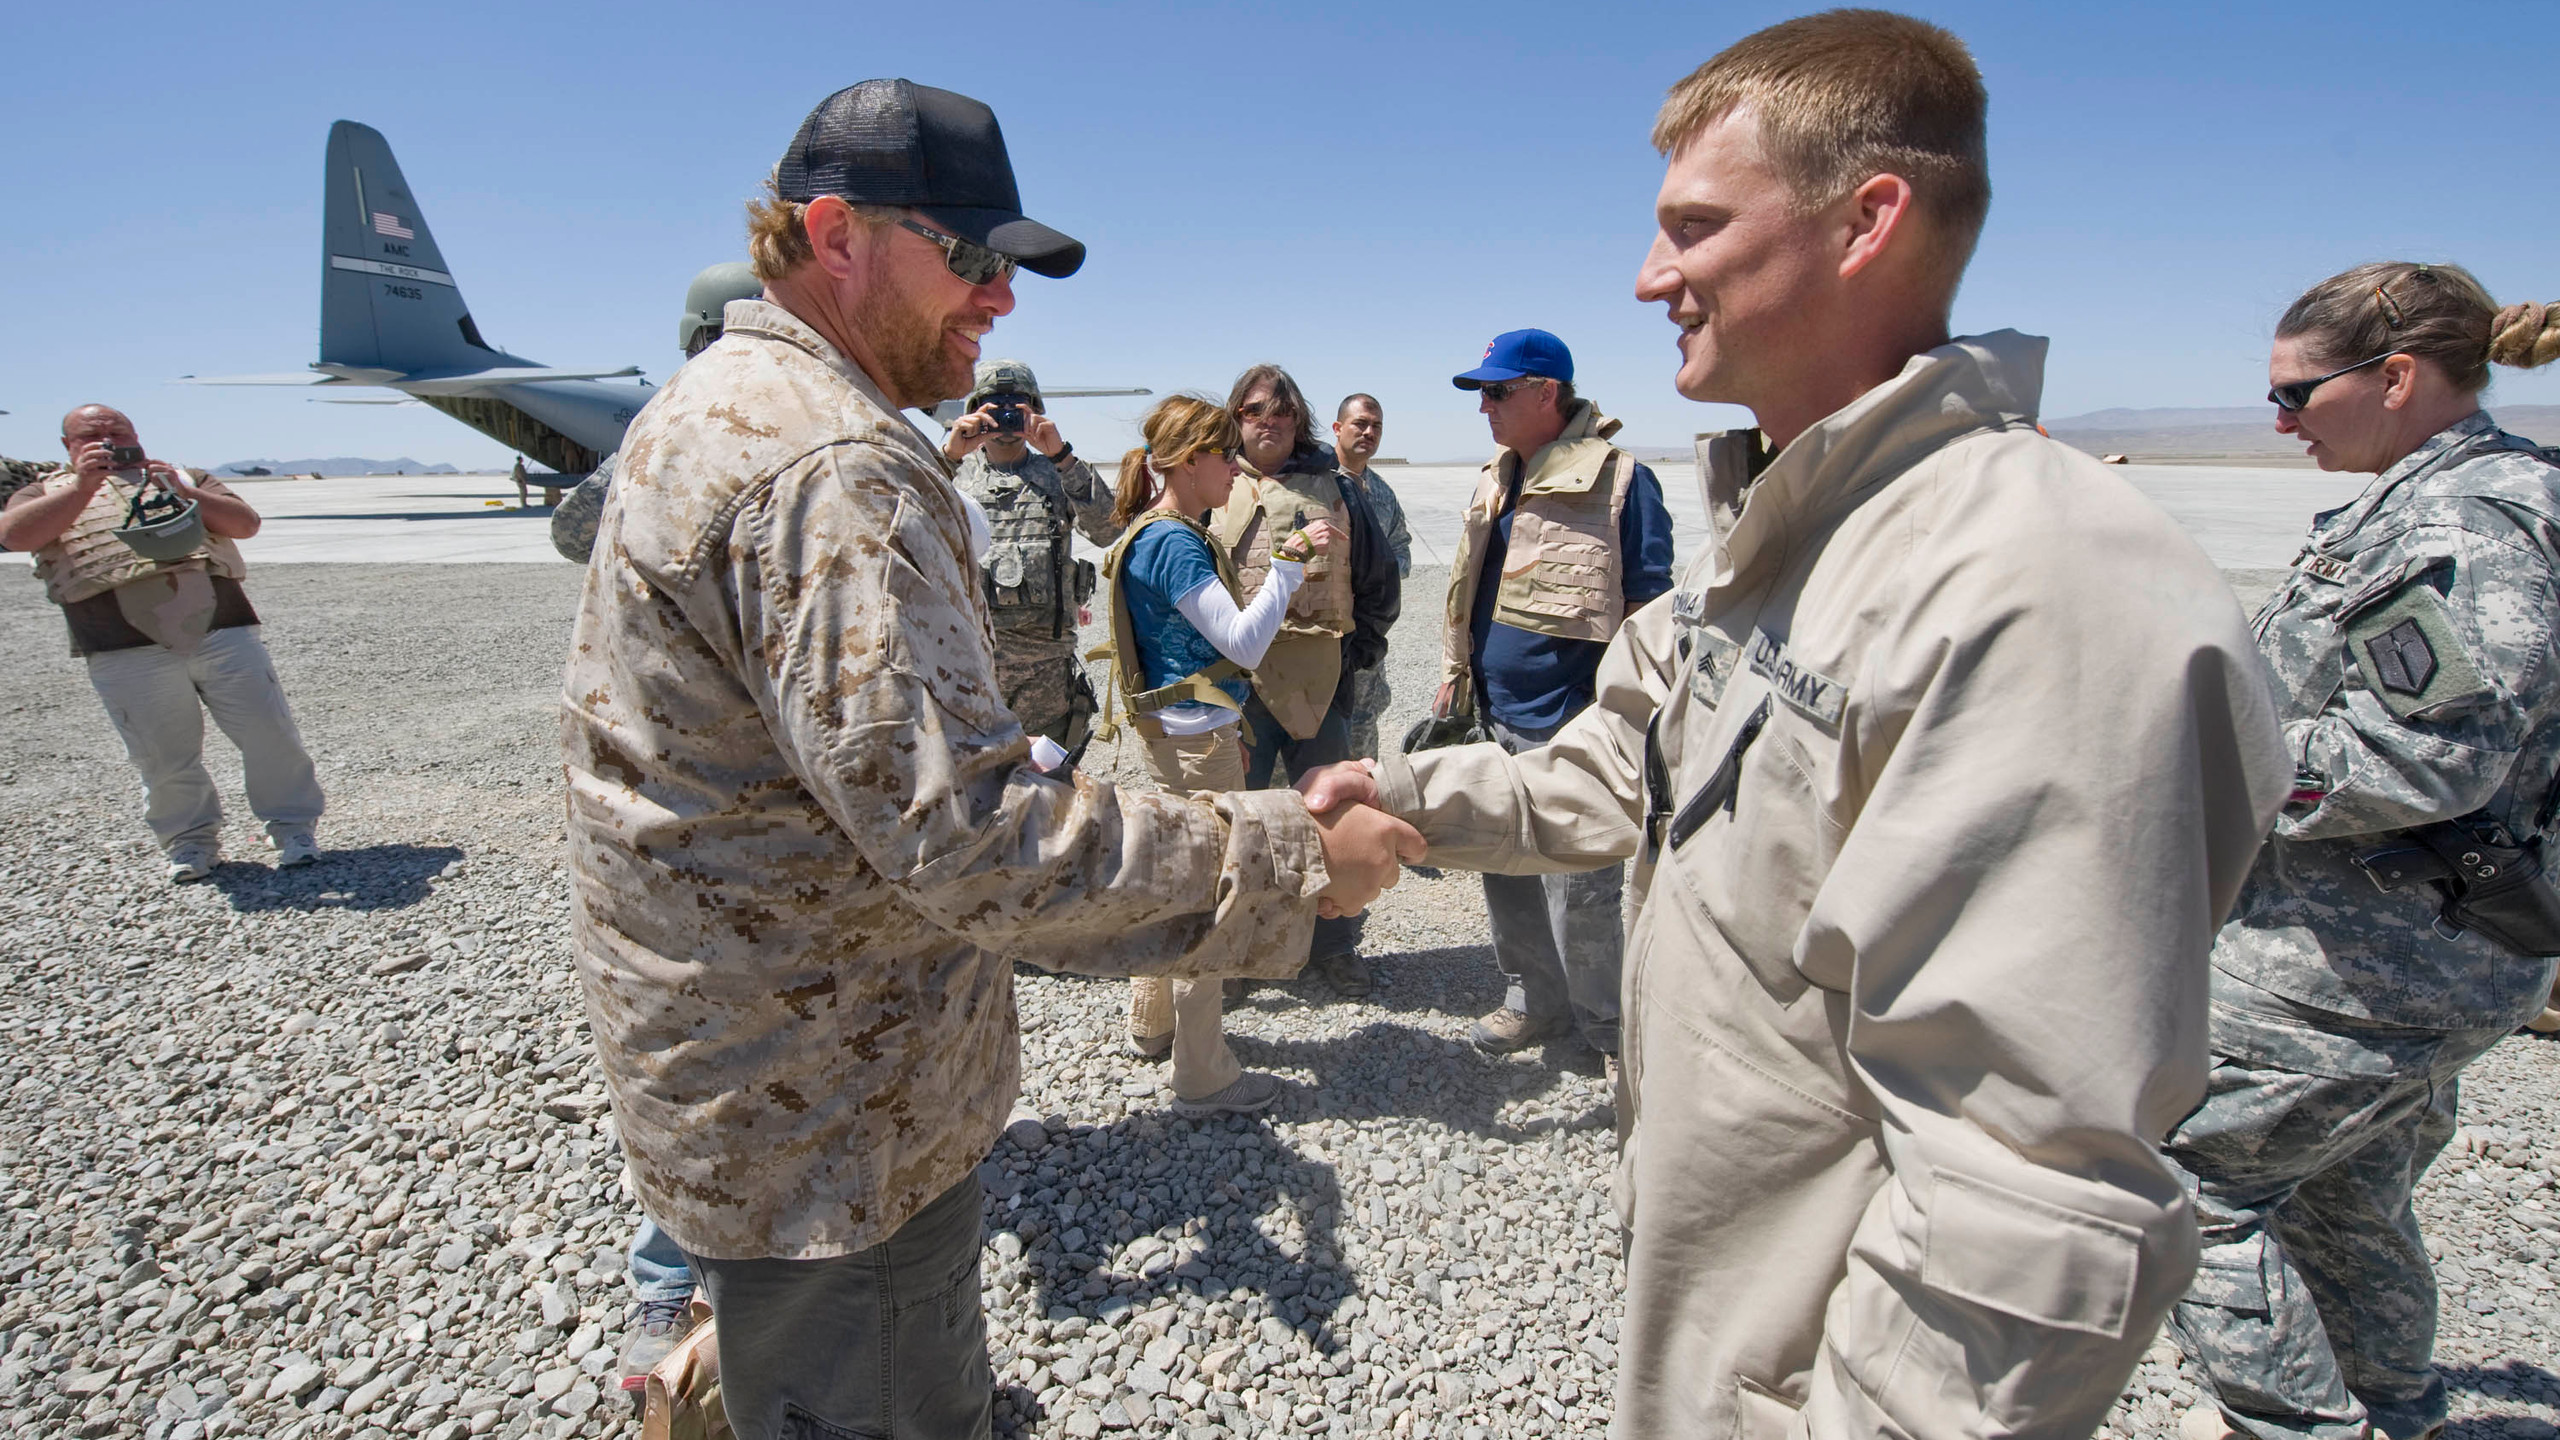 Keith Meets Troops on Military Tour